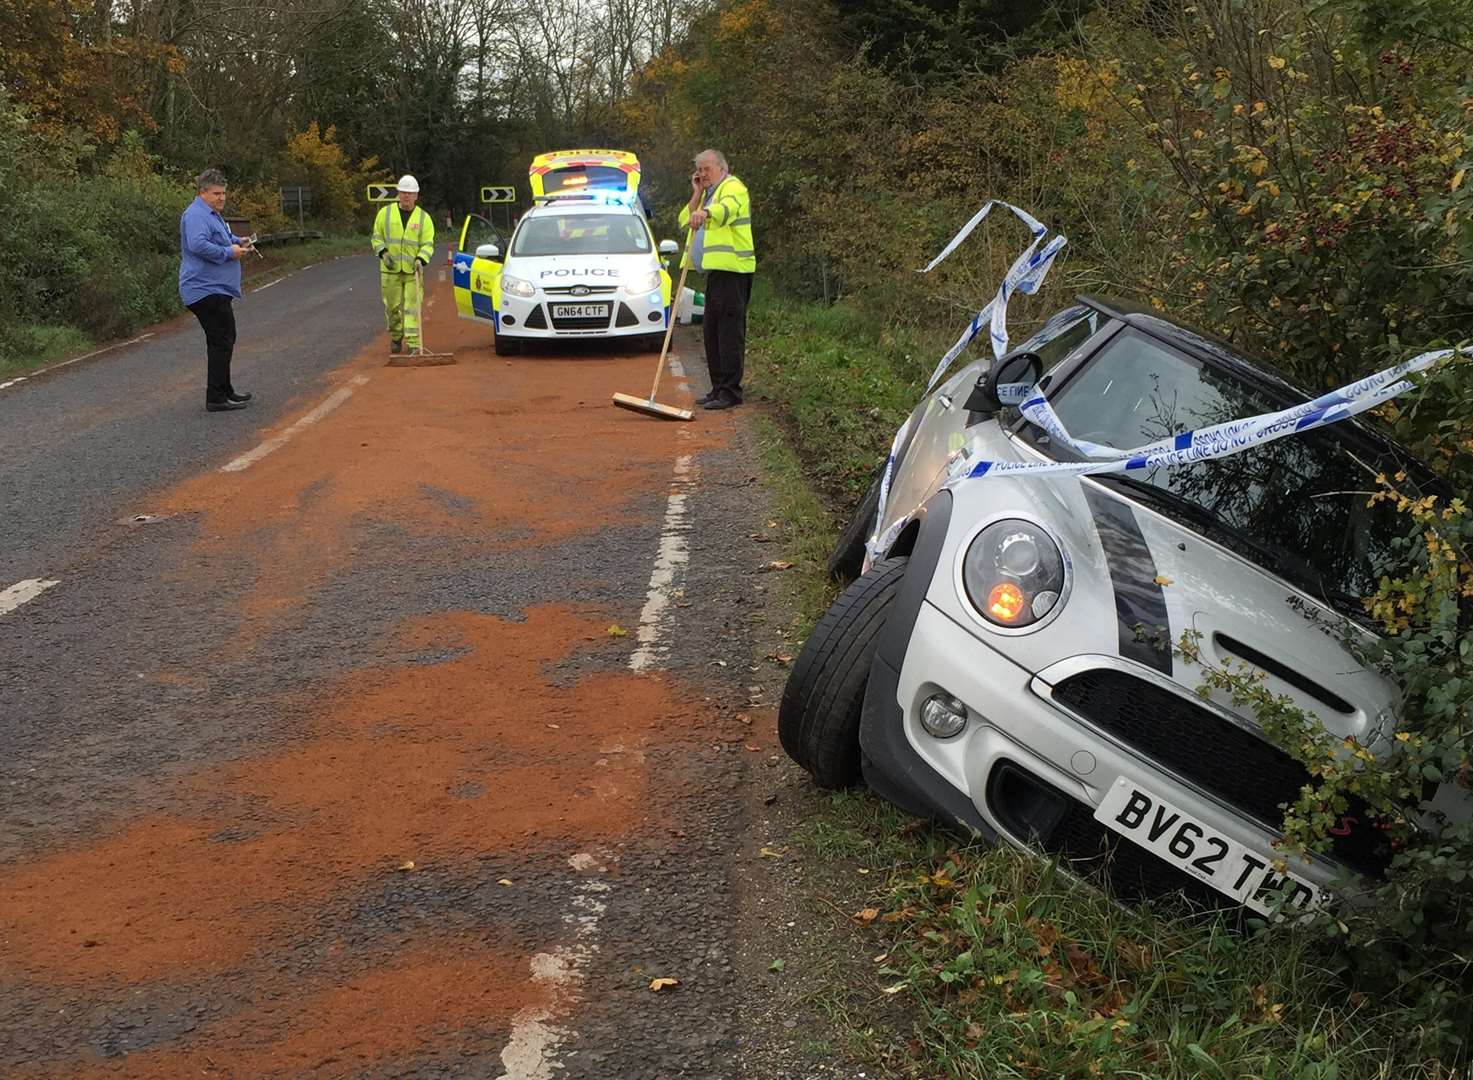 Lucky to be alive after car spins out of control